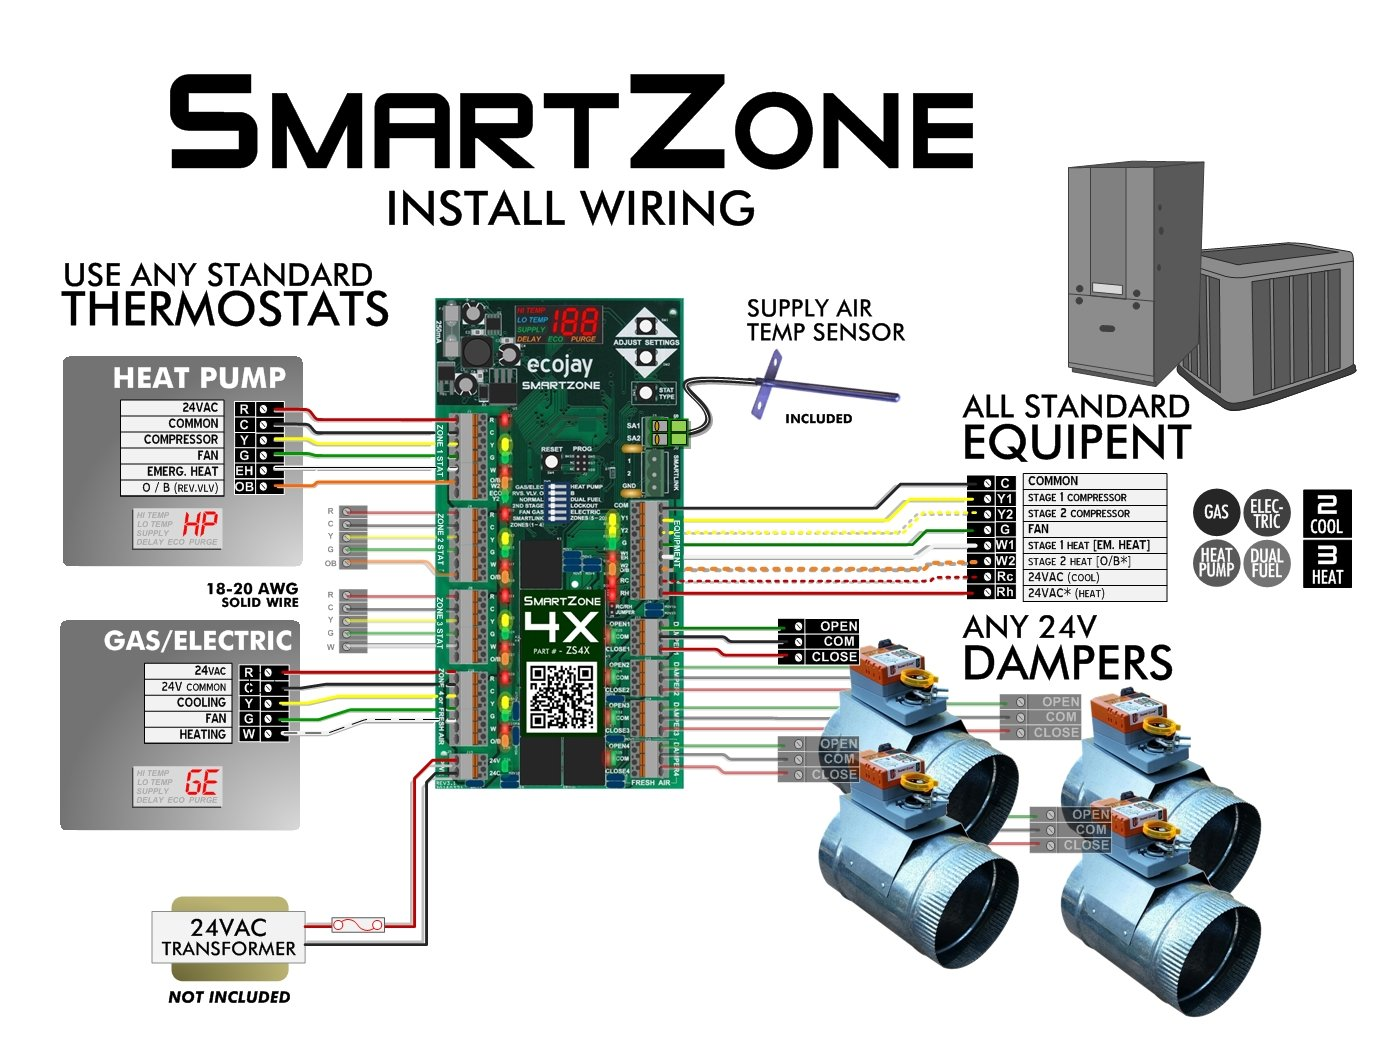 Multi stage heating and cooling - Smartzone 4x Control 4 Zone Controller Kit W Temp Sensor Universal Replacement For Honeywell Zoning Panel Truezone Hz432 More Amazon Com